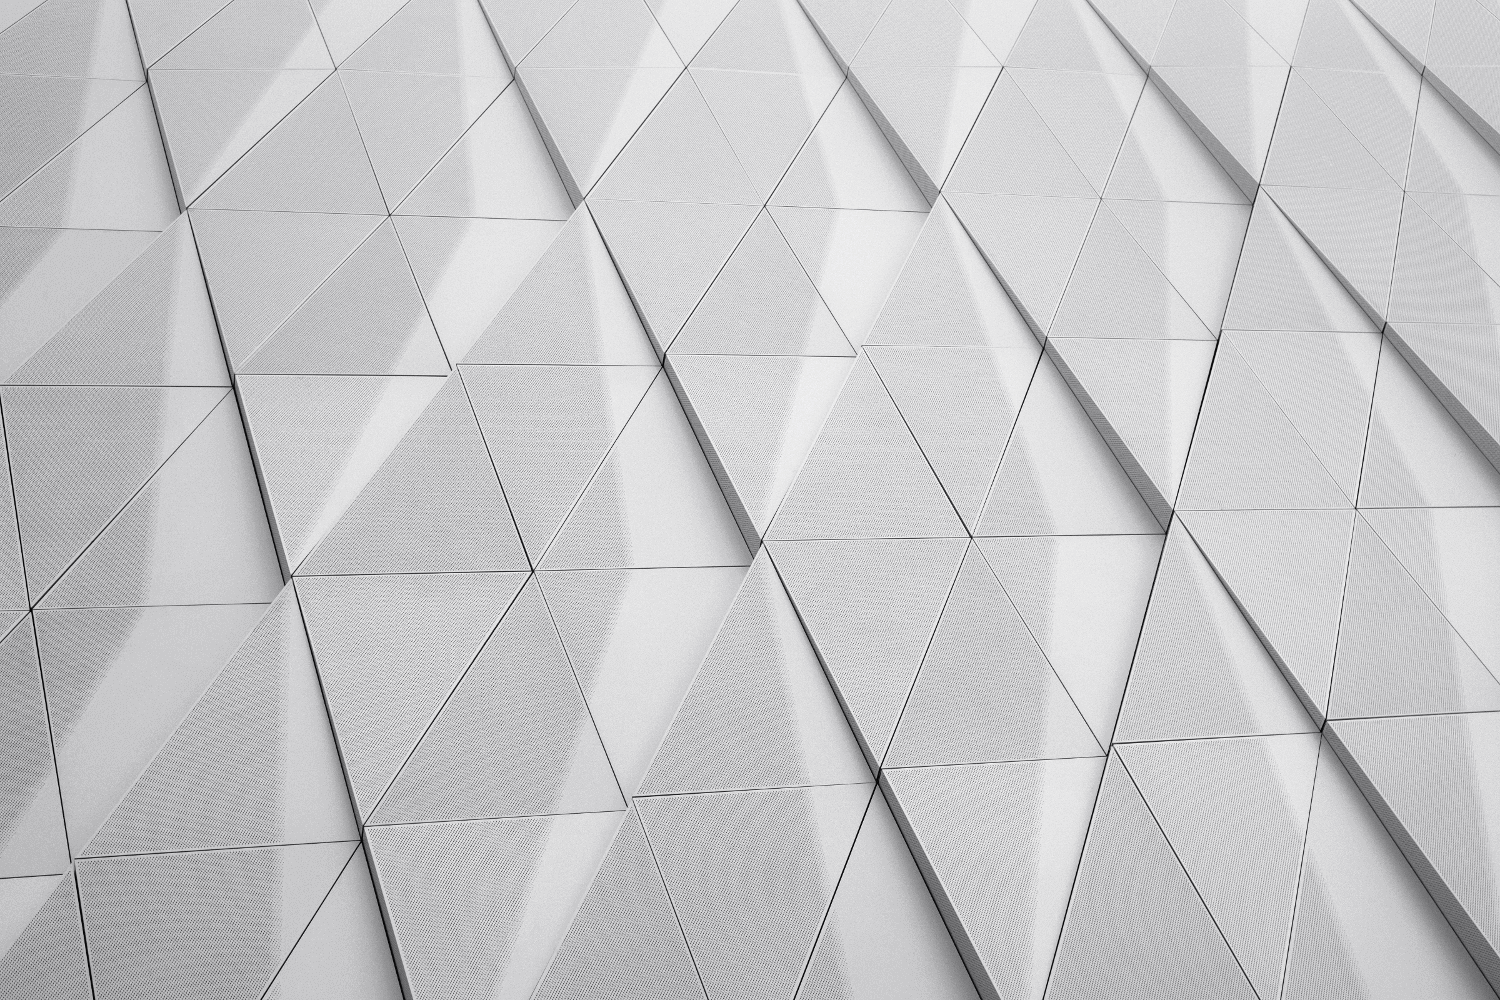 Geometric triangles interwoven for a pleasant textured look